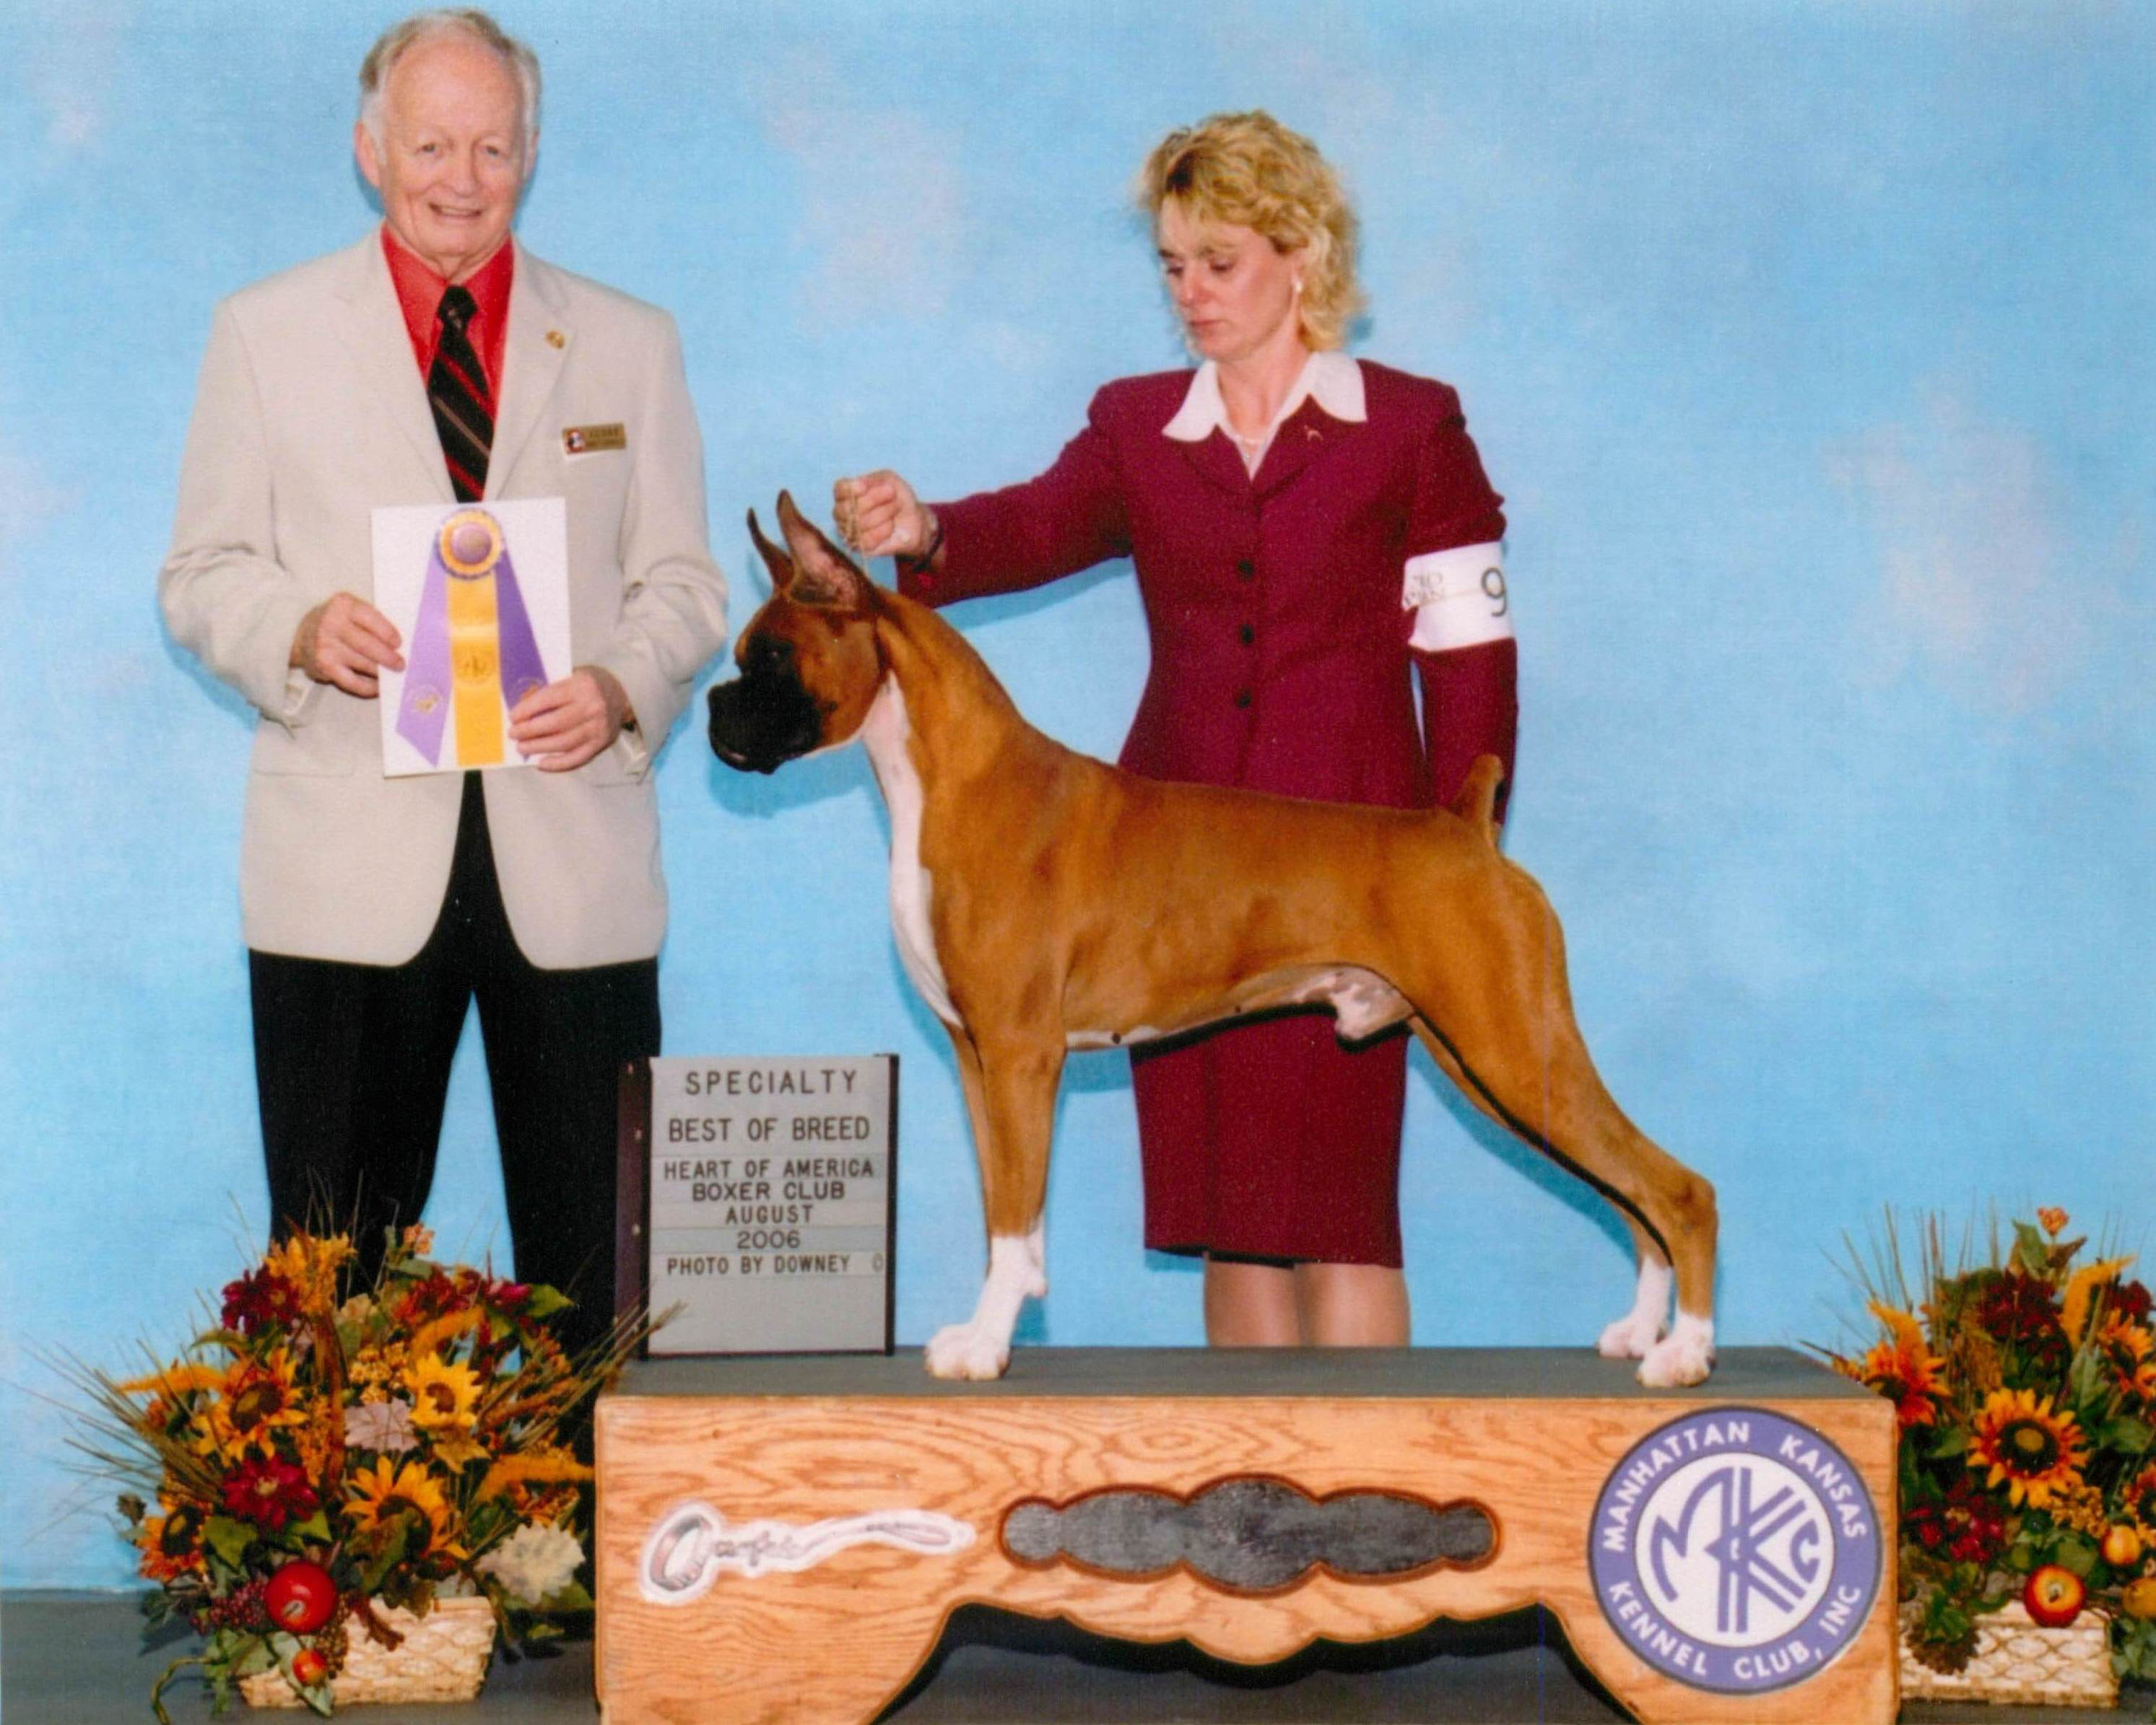 Best of Breed @ 2006 Specialty Show #2